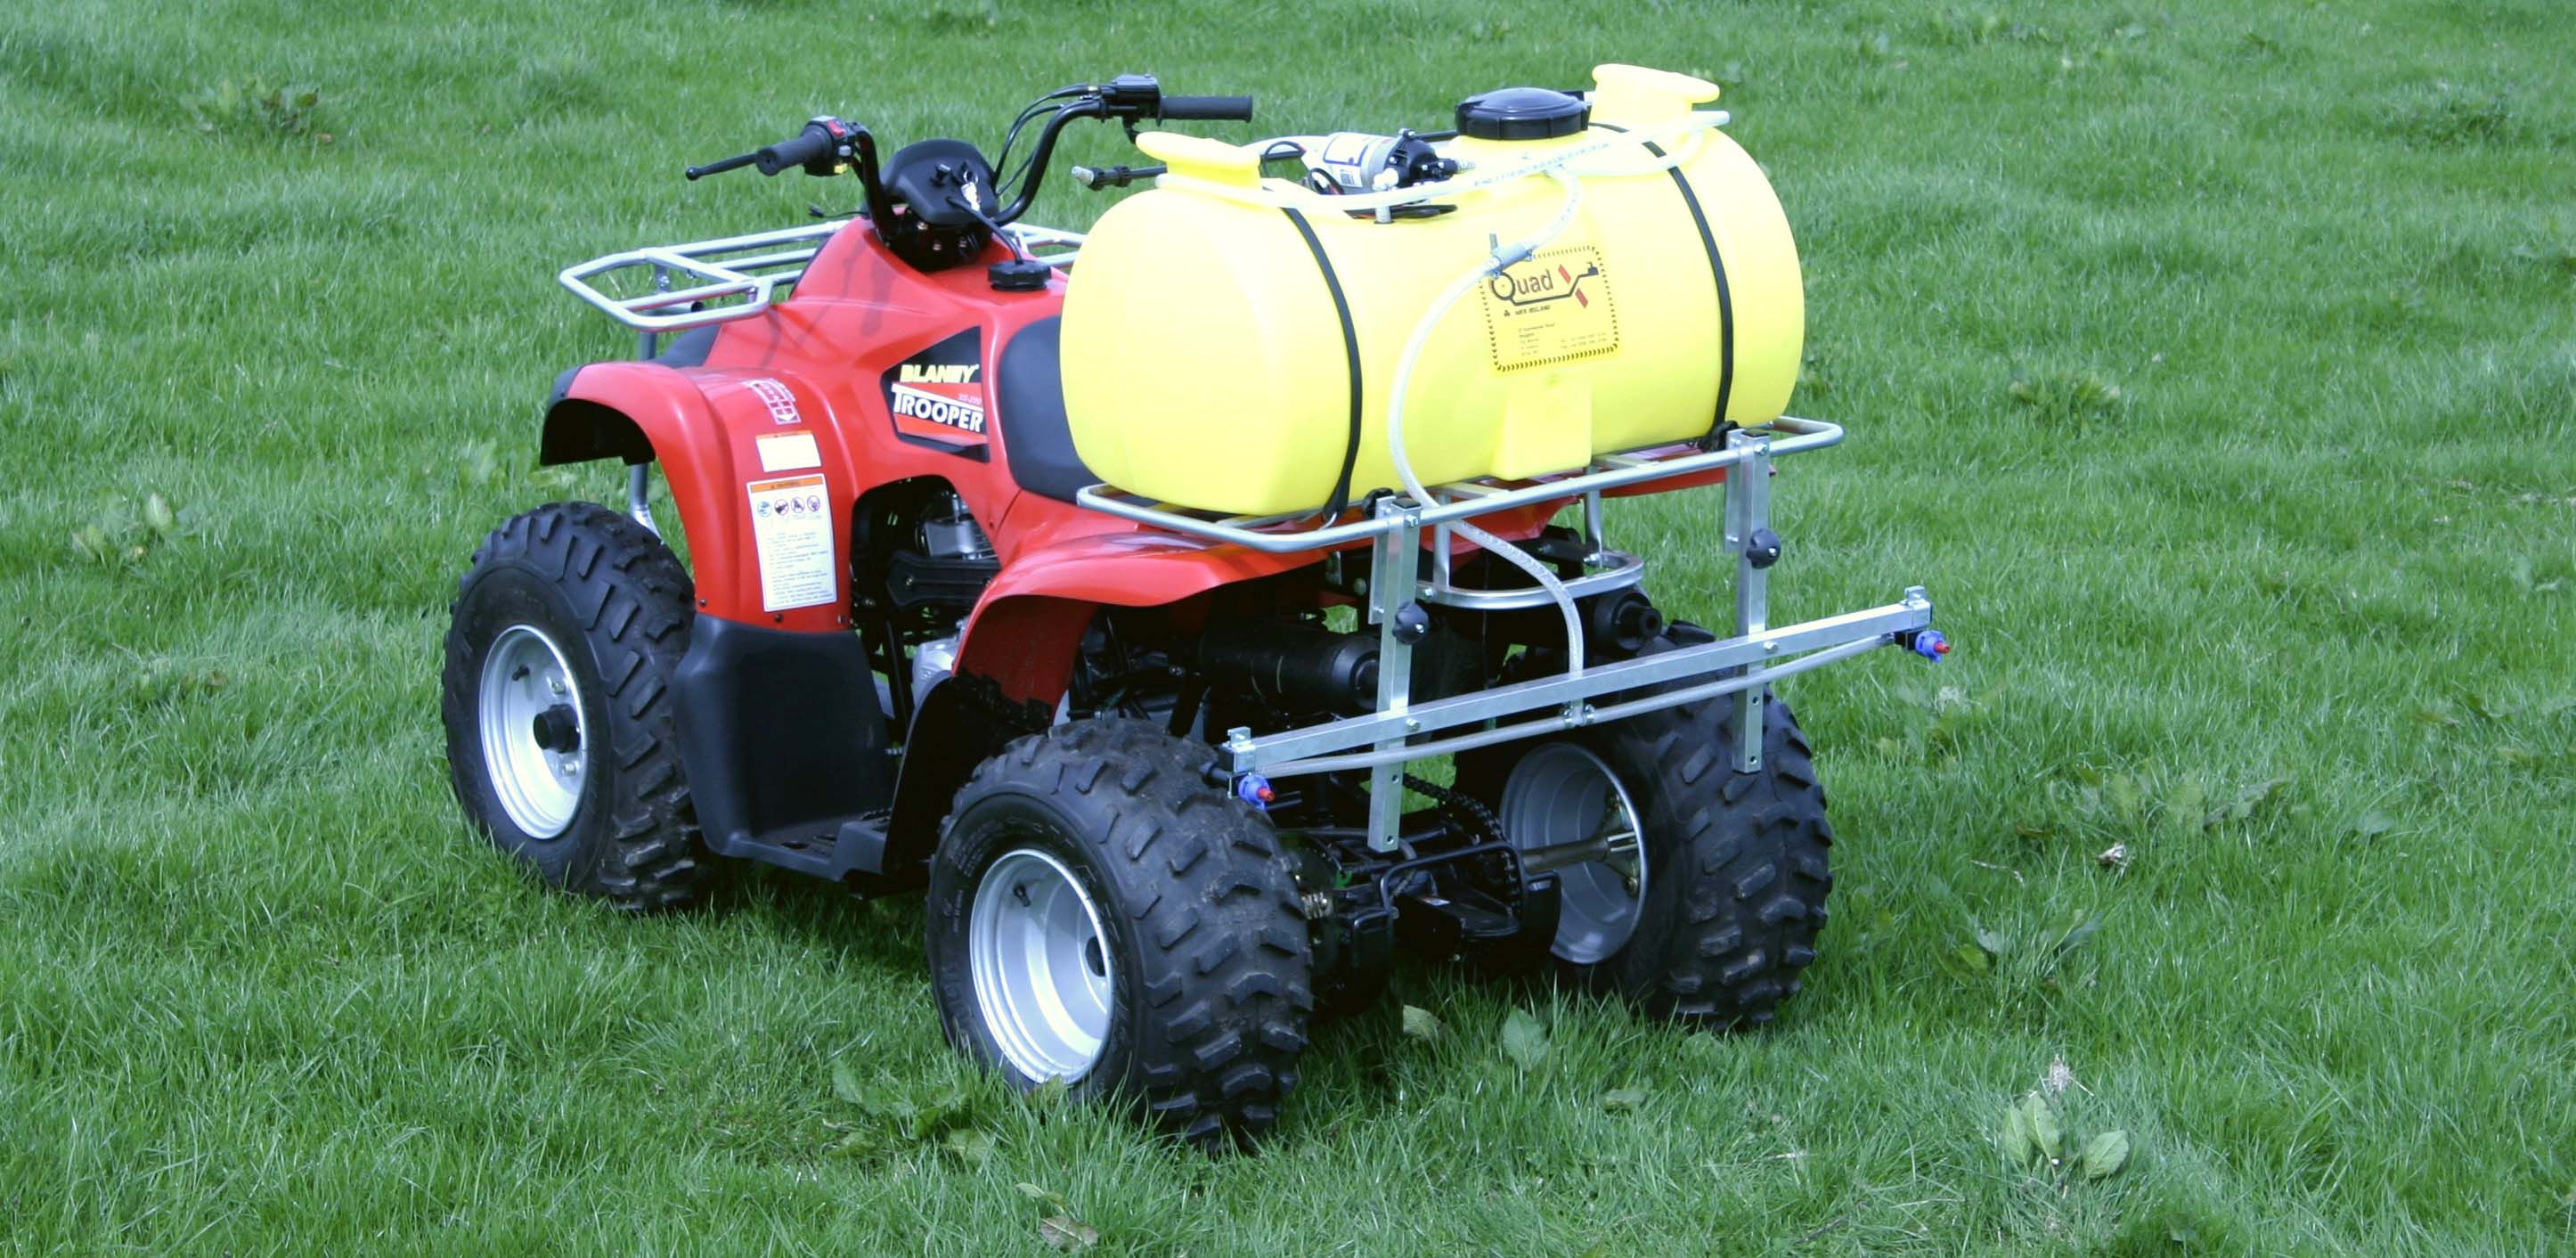 Wide Spray Boom Quad Accessories Atv Accessories For Farm Quads